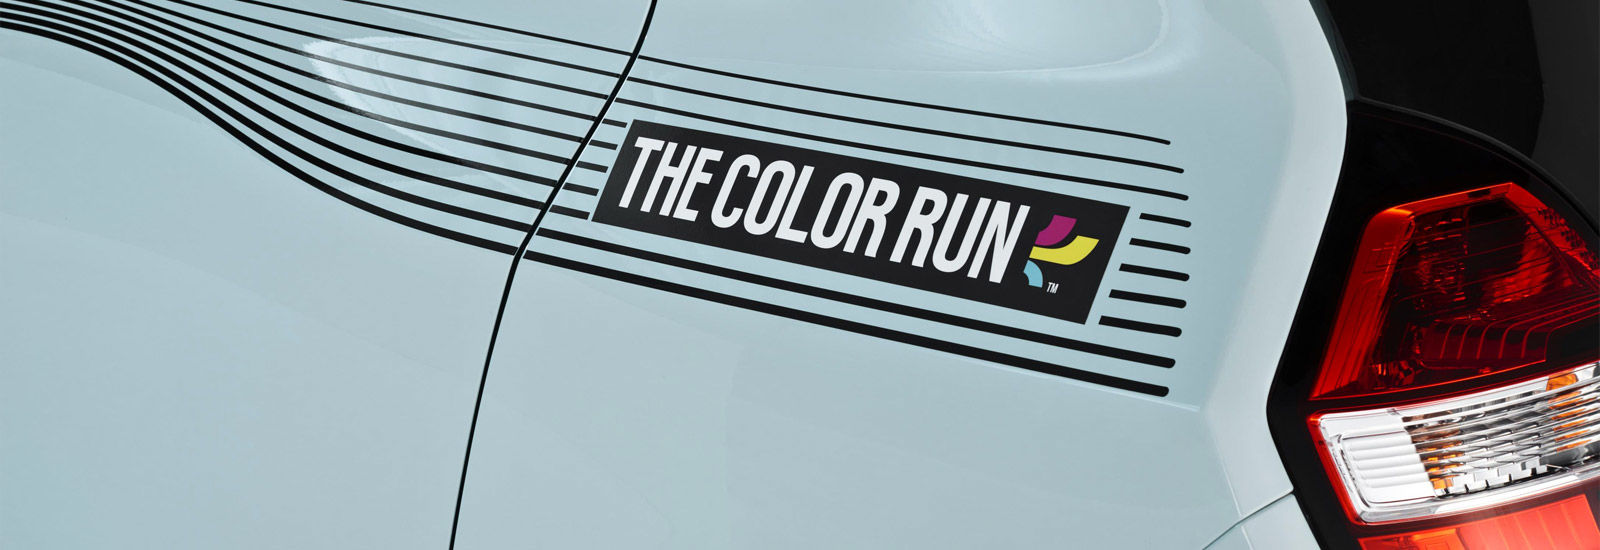 renault twingo color run  plete guide carwow